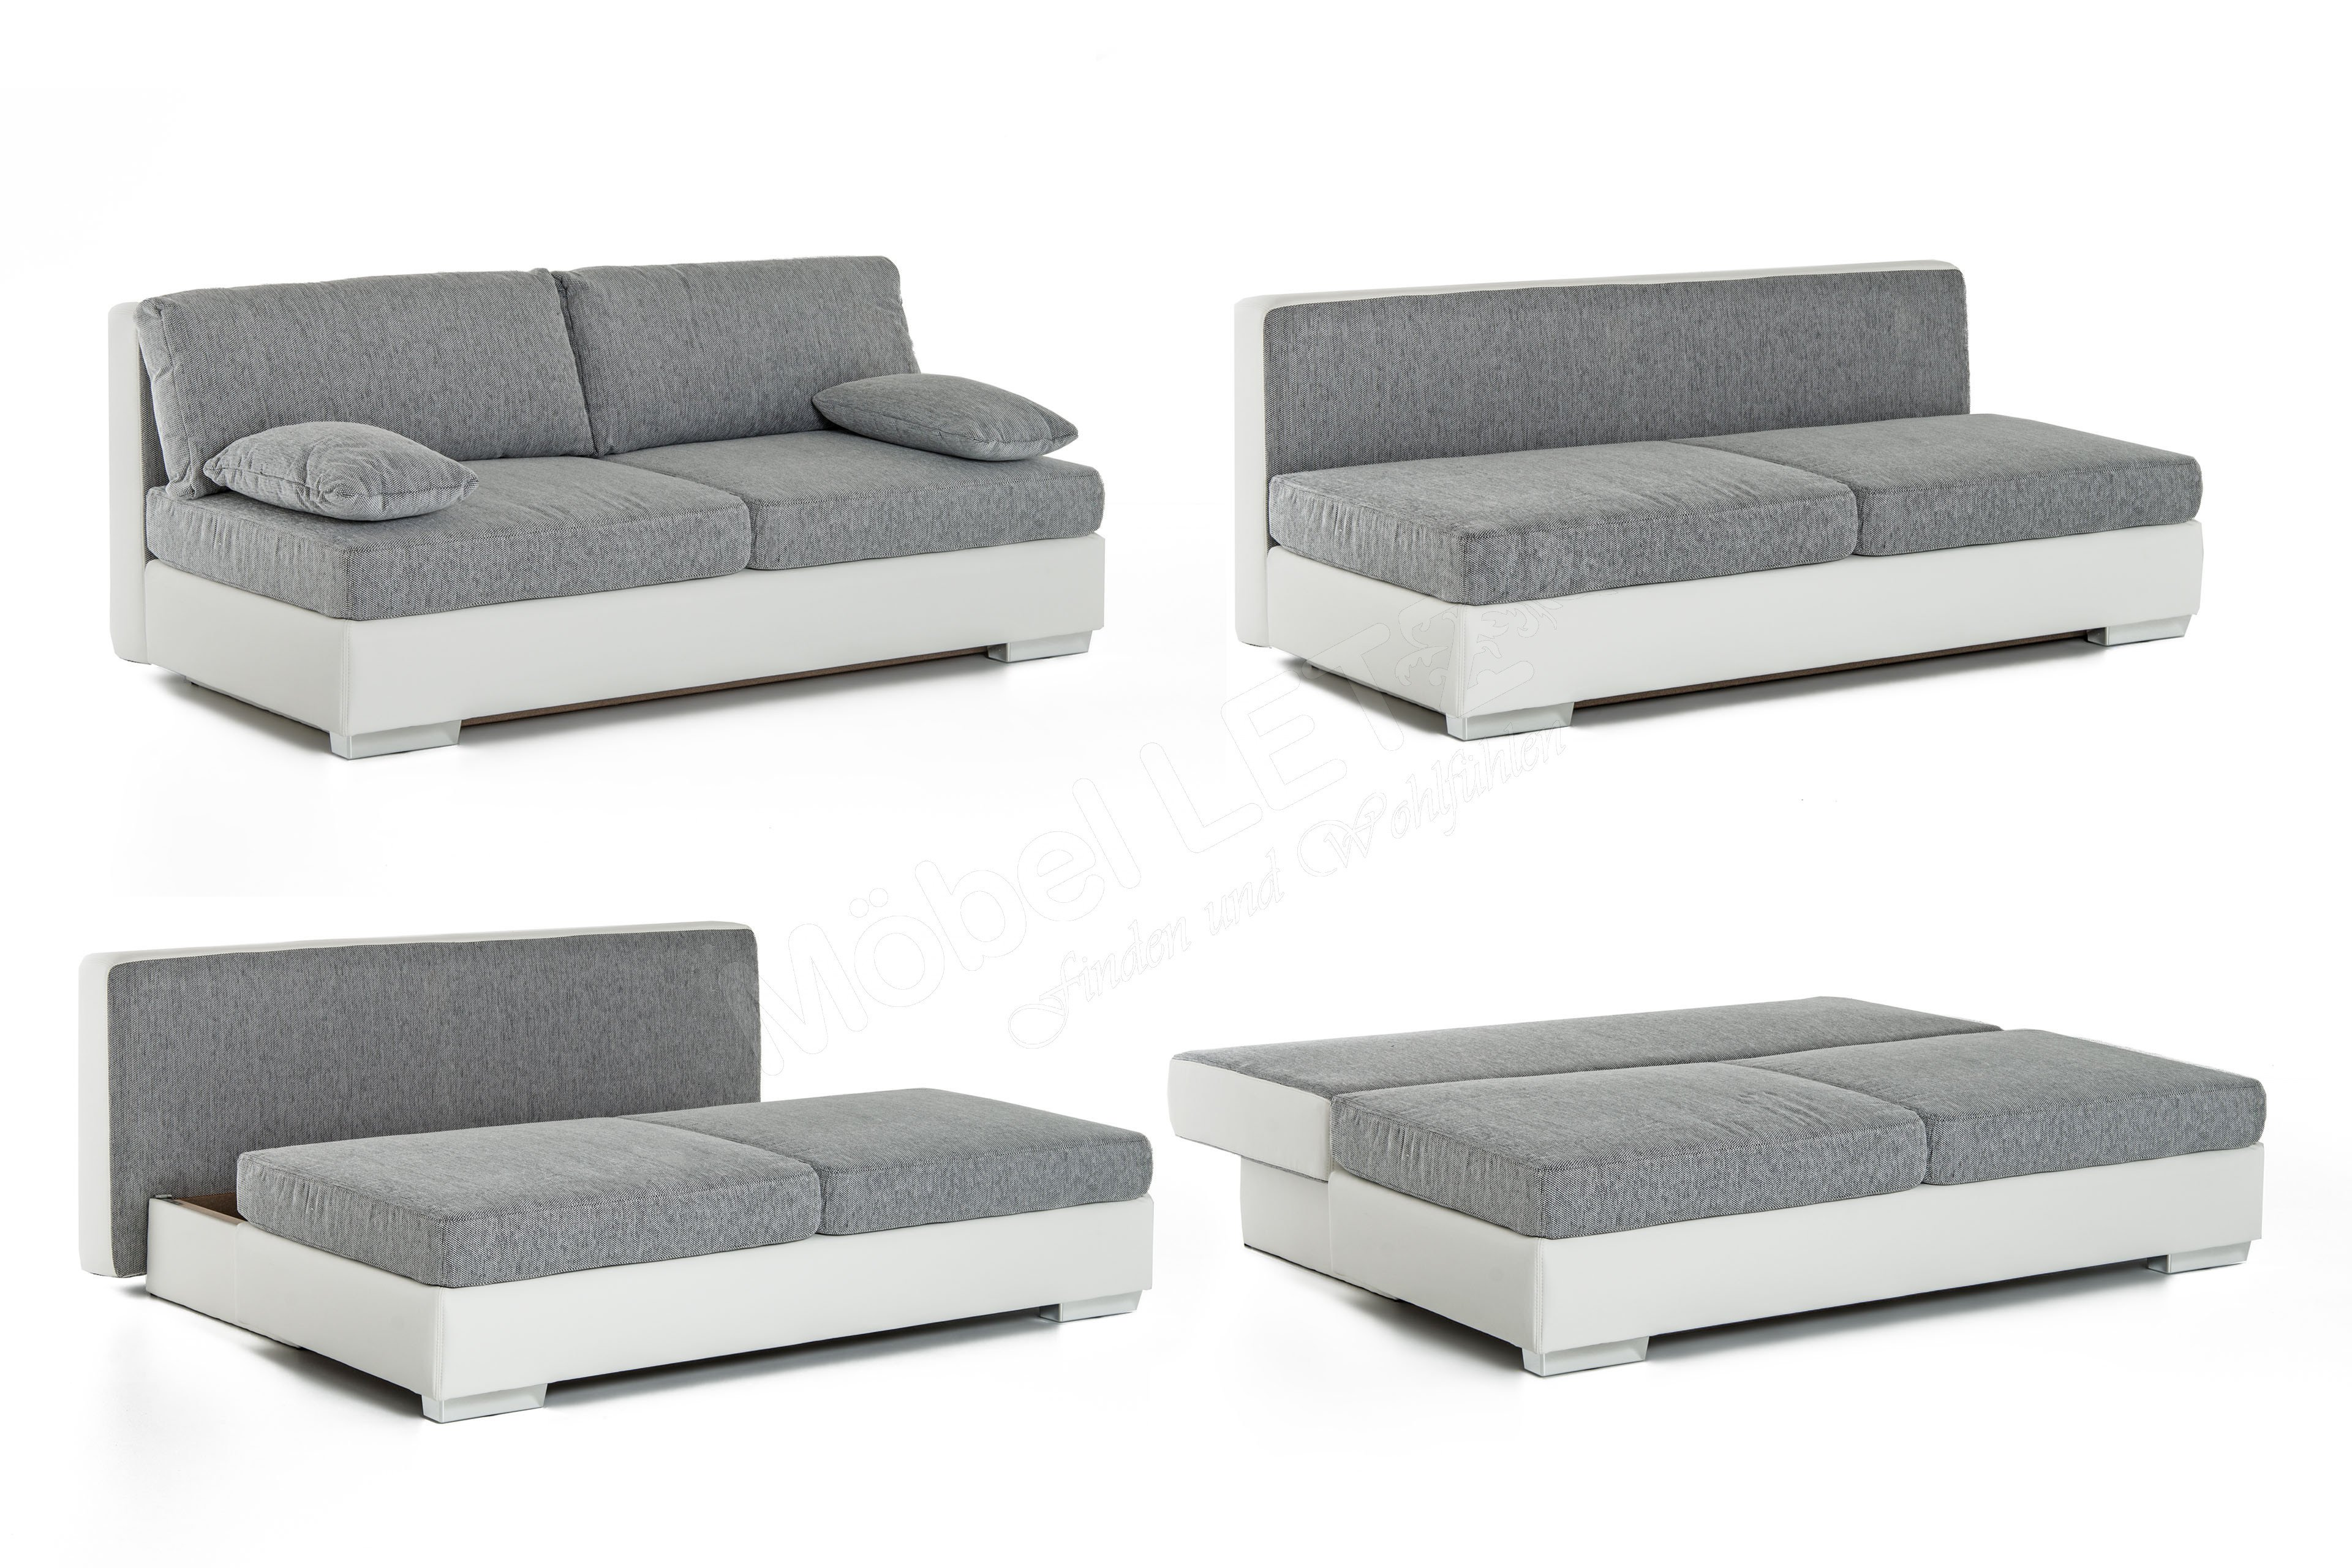 jockenh fer schlafsofa dorset in wei grau m bel letz ihr online shop. Black Bedroom Furniture Sets. Home Design Ideas